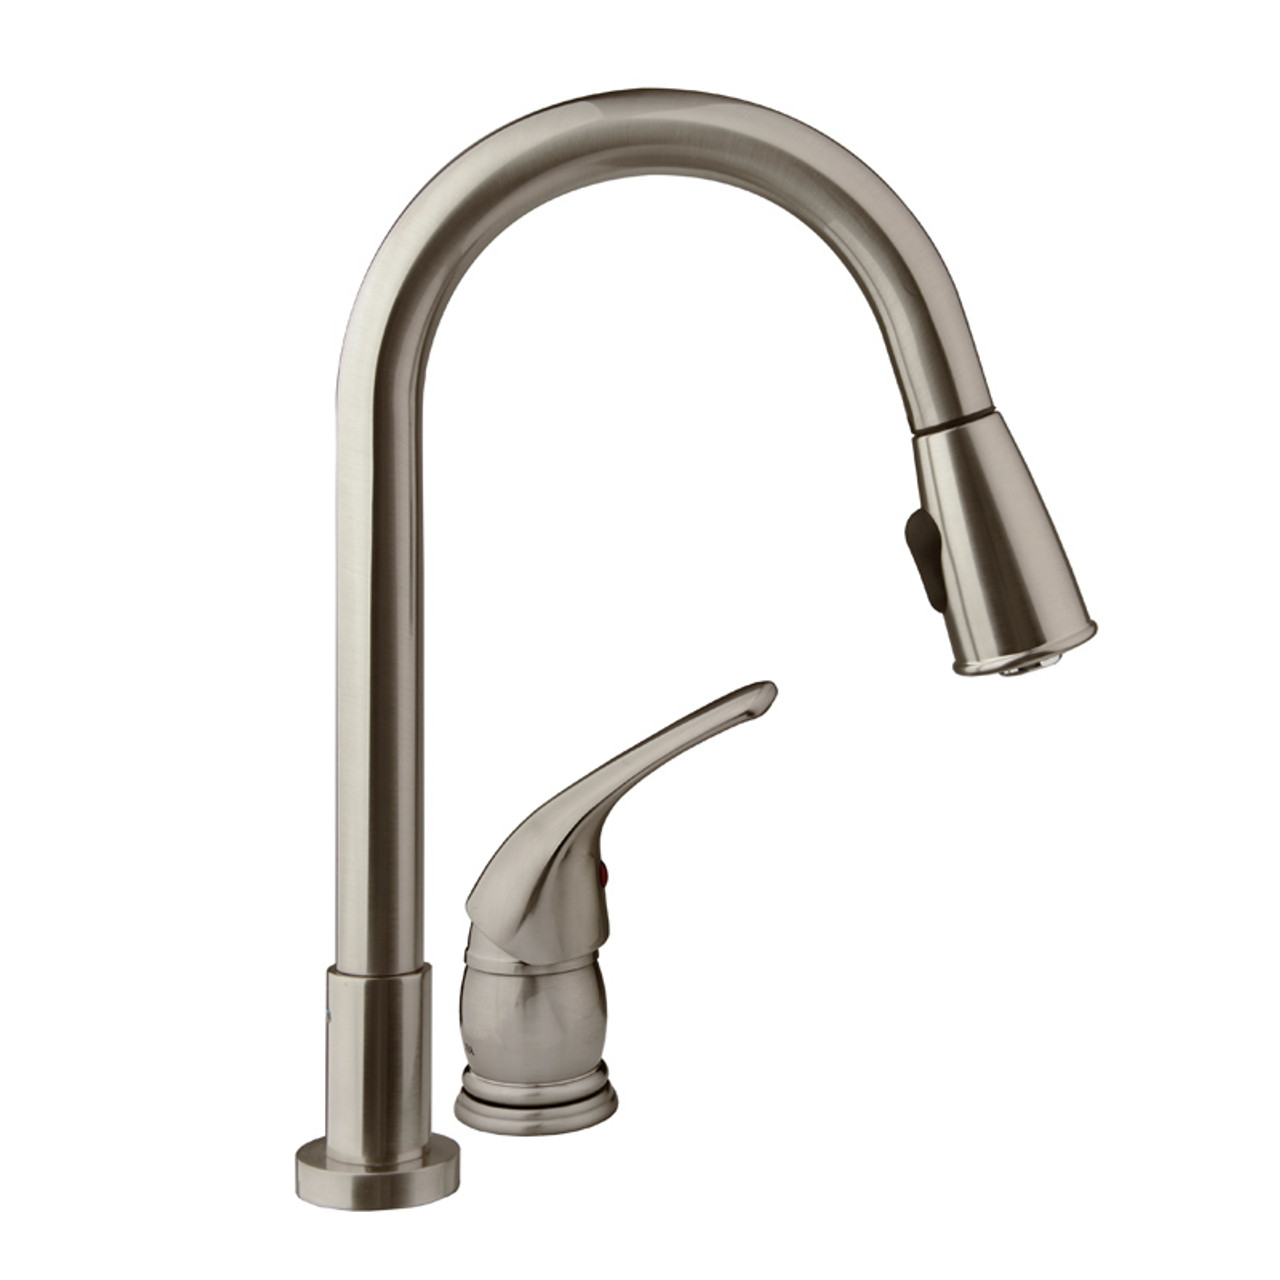 RV Kitchen Faucets For Recreational Vehicles & Motorhomes - DuraFaucet